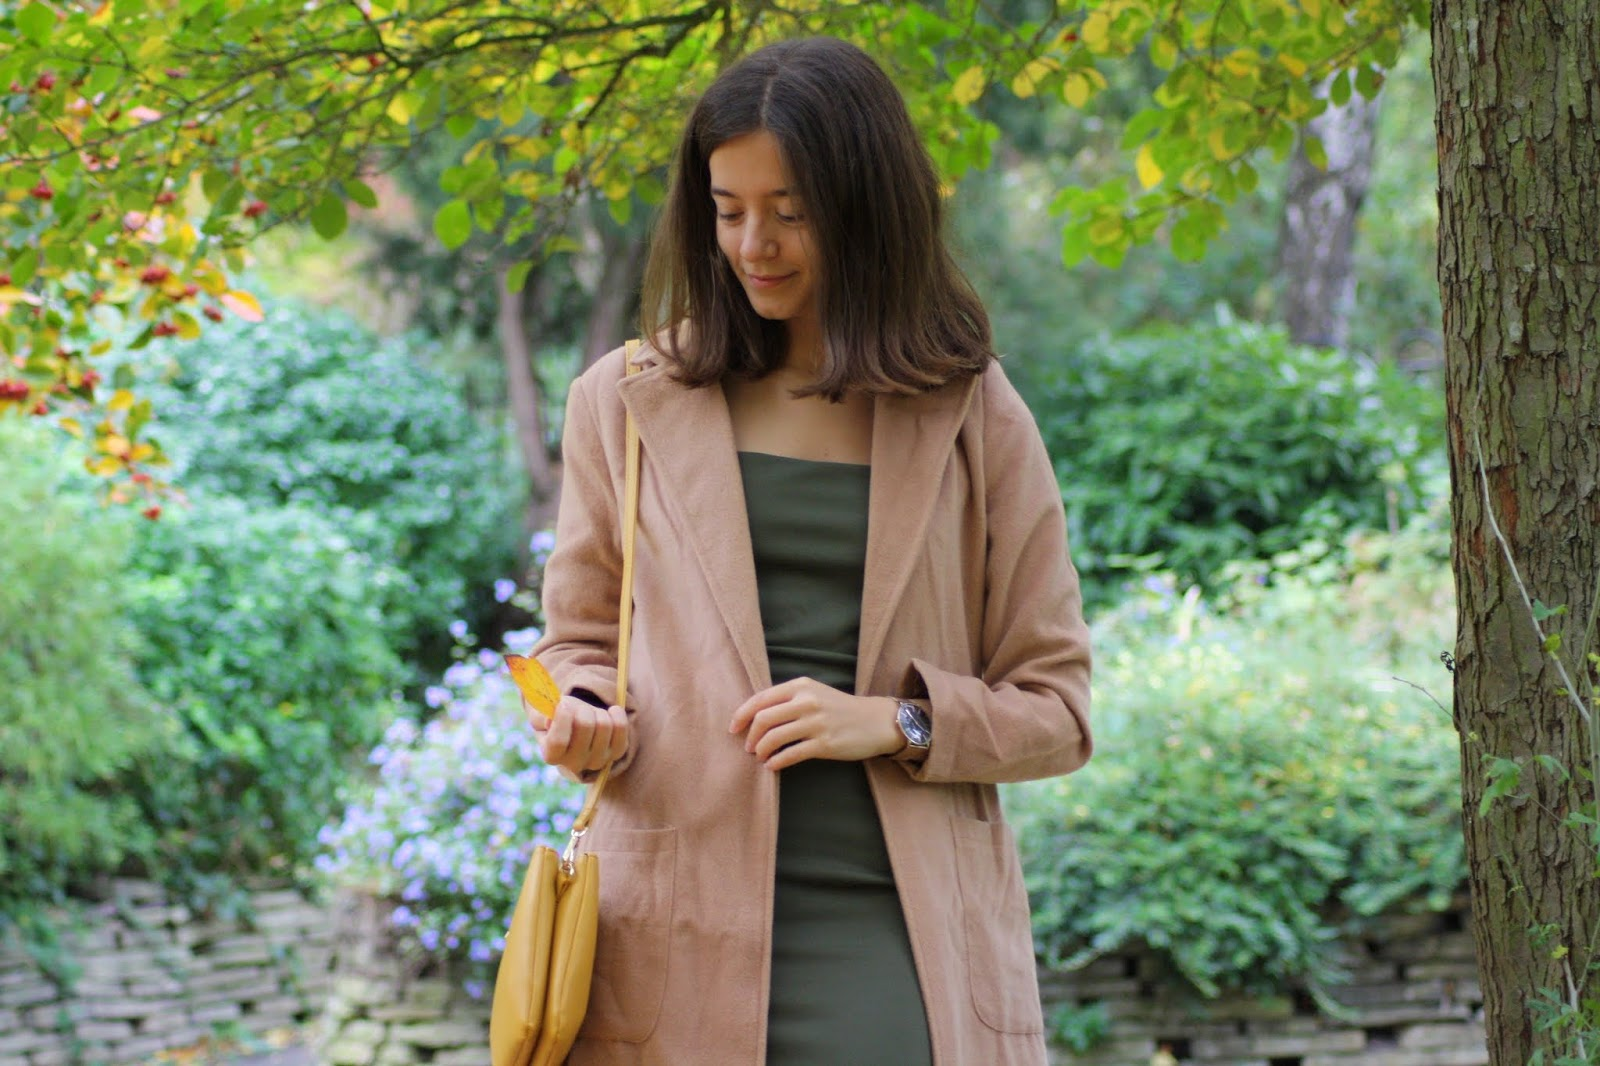 brunette standing amongst autumn leaves, wearing brown jacket and khaki dress